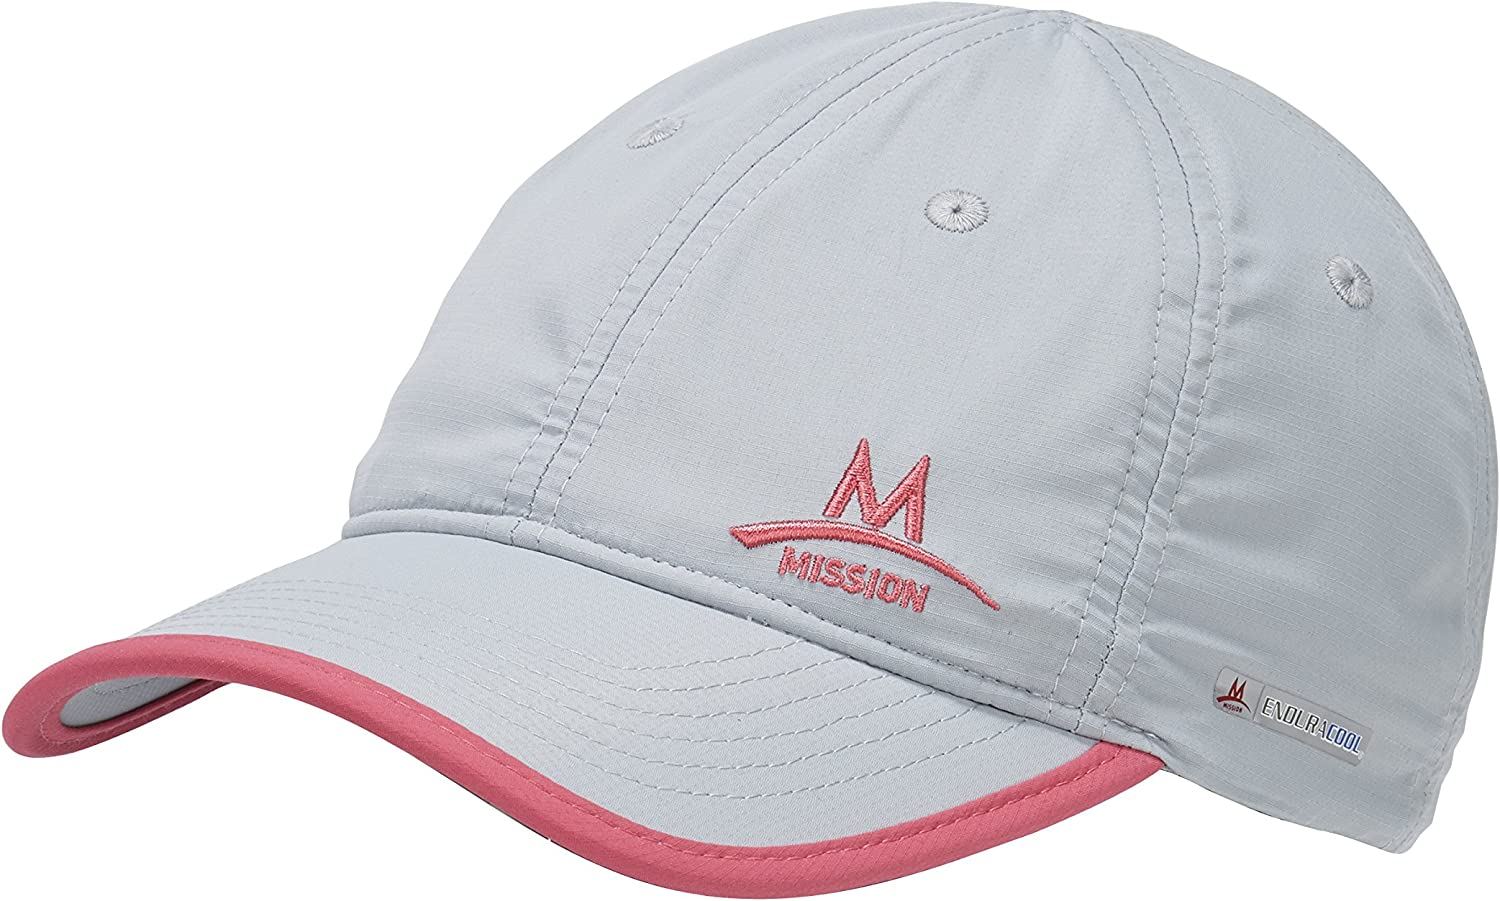 Mission Enduracool Cooling Performance Hat